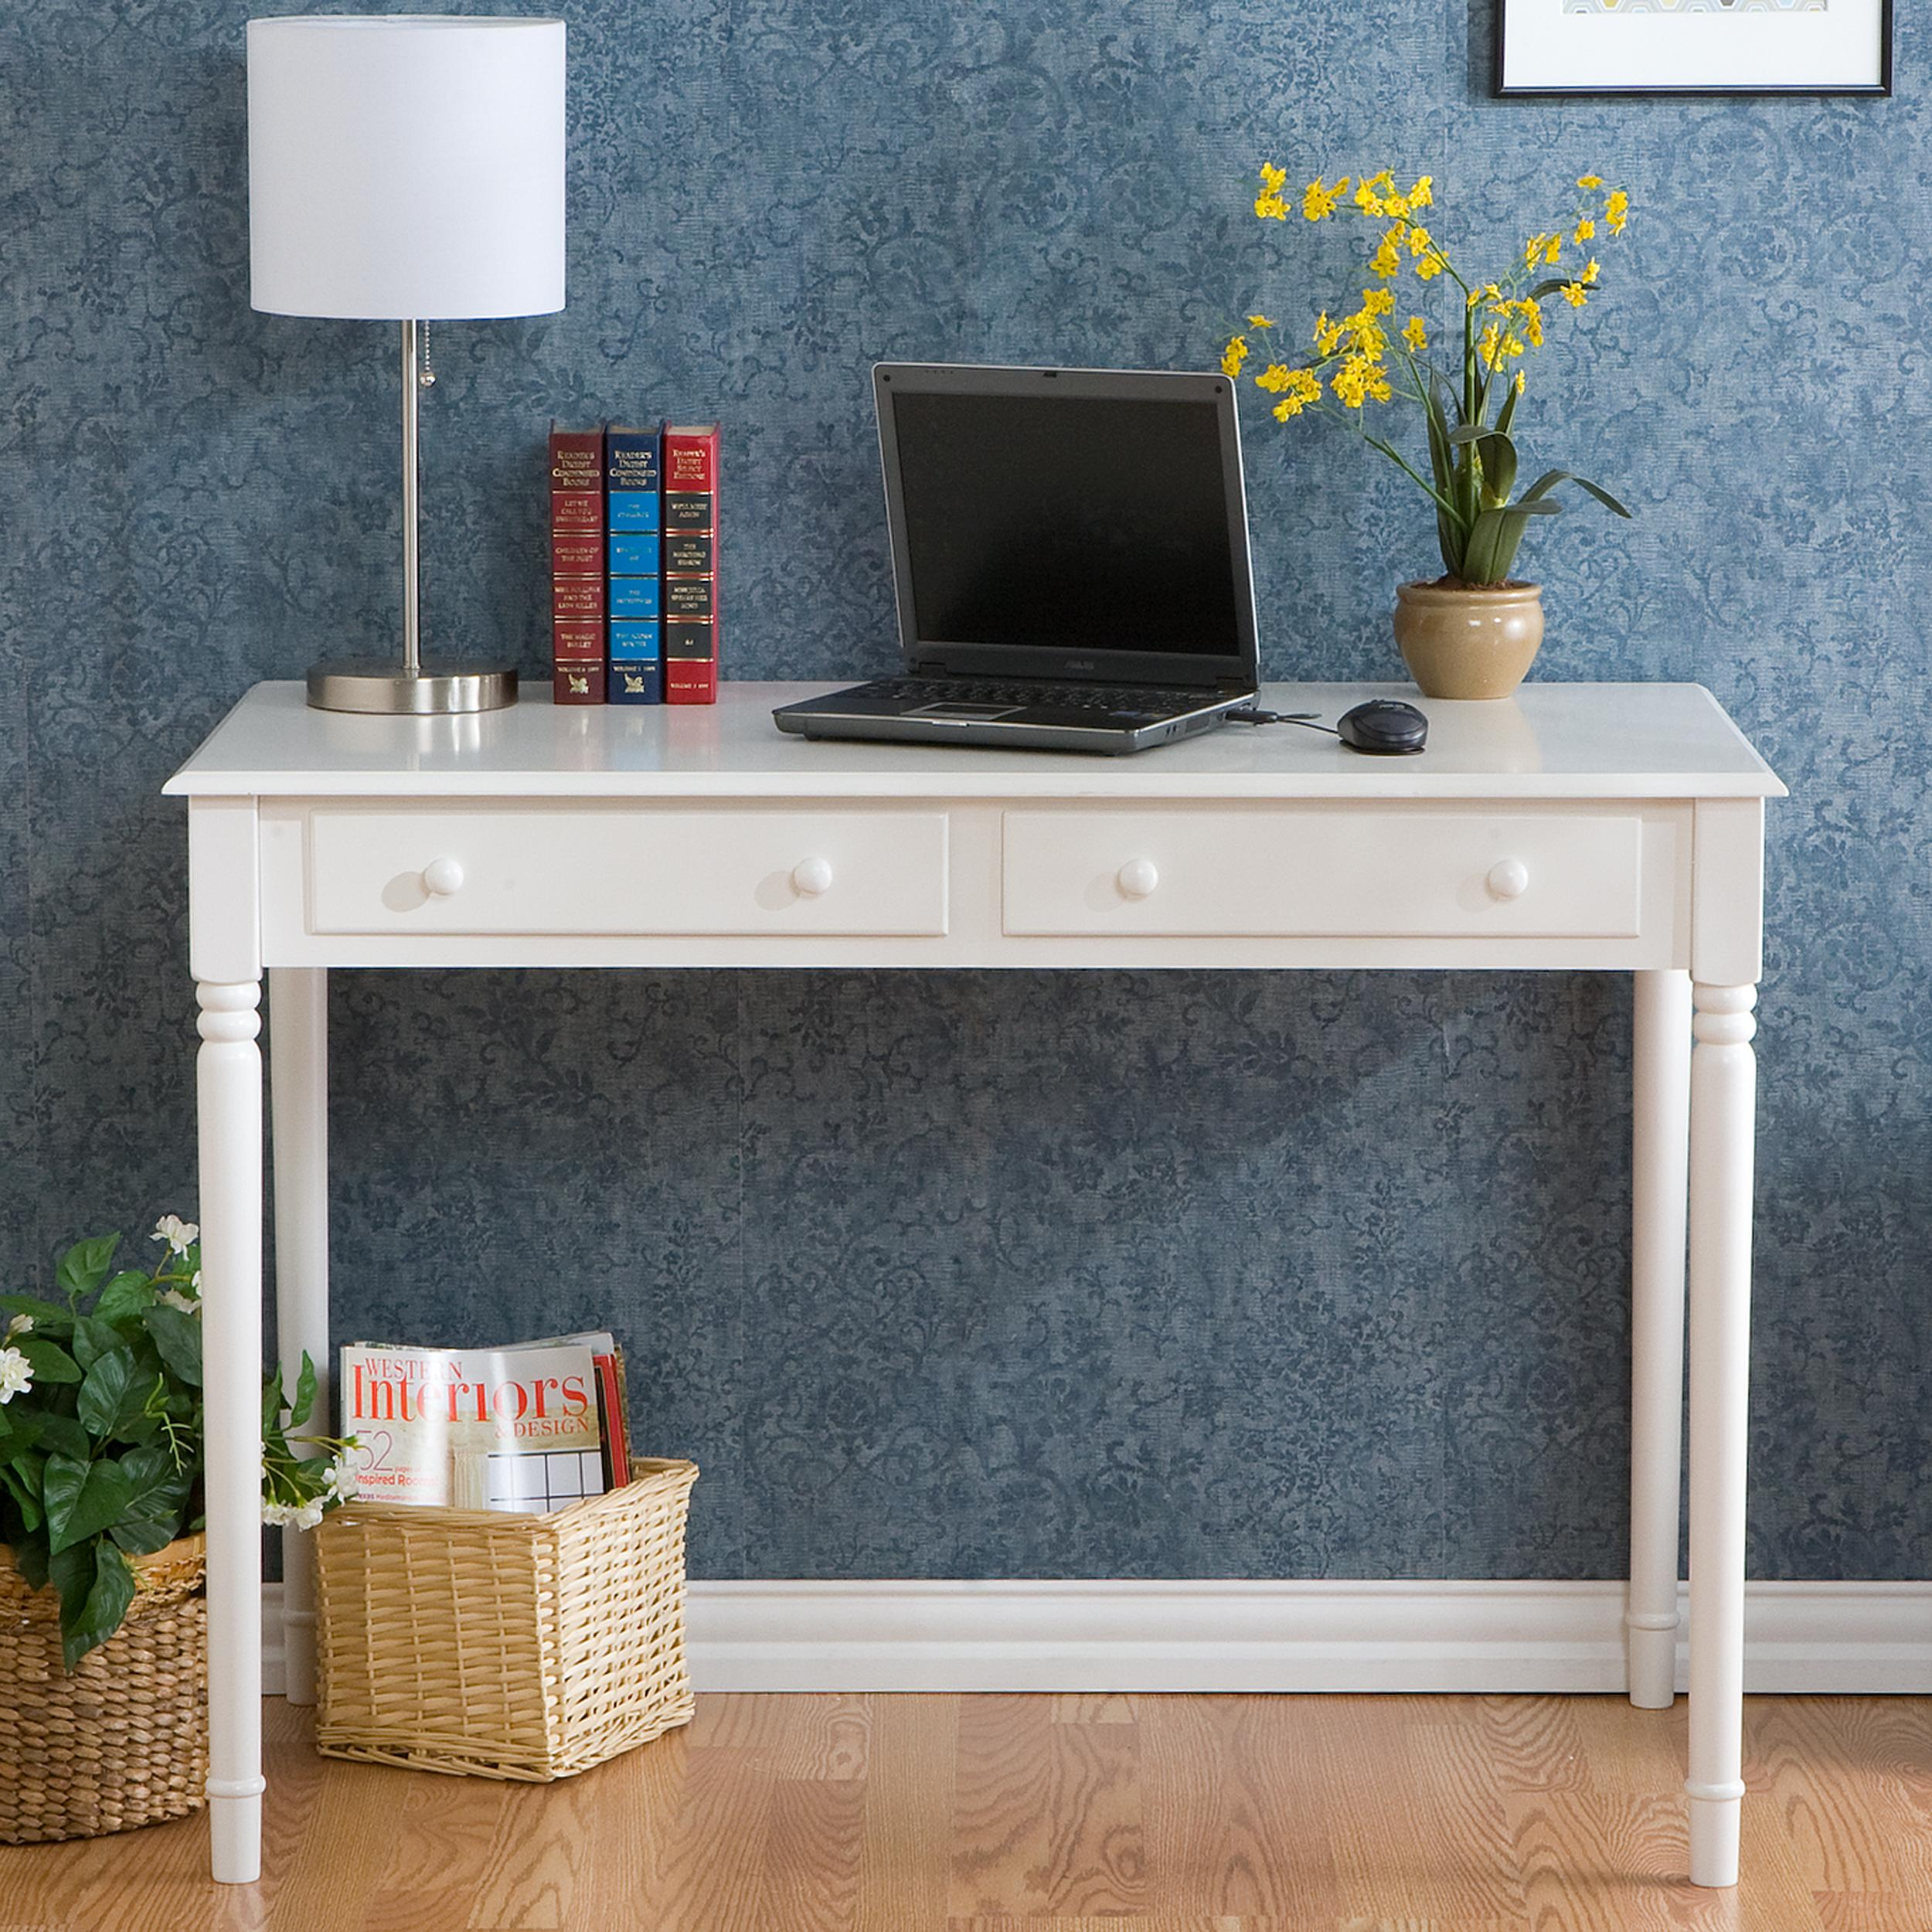 Awesome Grey Wallpaper Completing Old Fashioned Home Office using White Desk with Drawers and Table Lamp